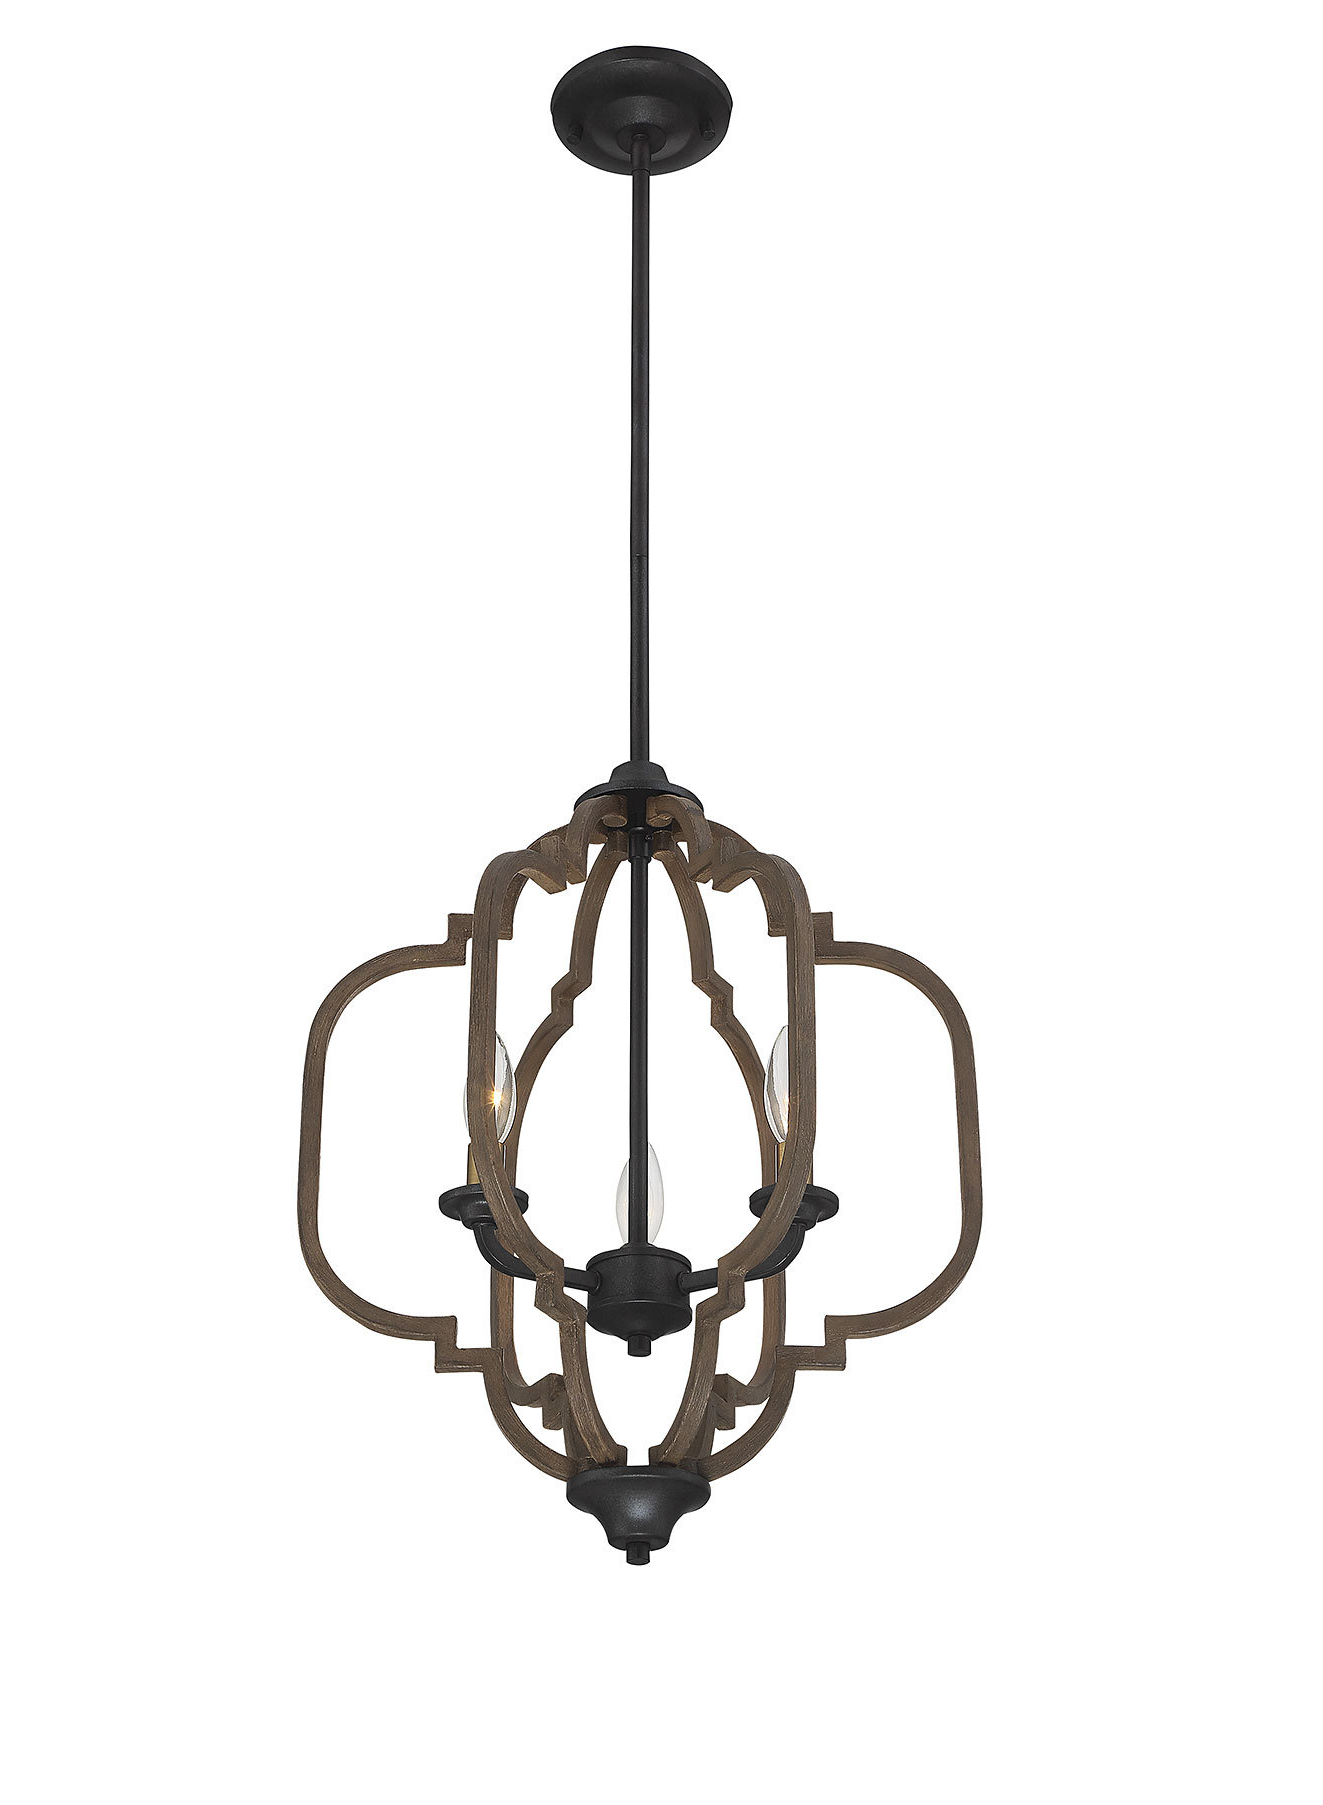 La Sarre 3 Light Globe Chandeliers Intended For Current House Of Hampton Robinette 3 Light Geometric Chandelier (View 23 of 25)